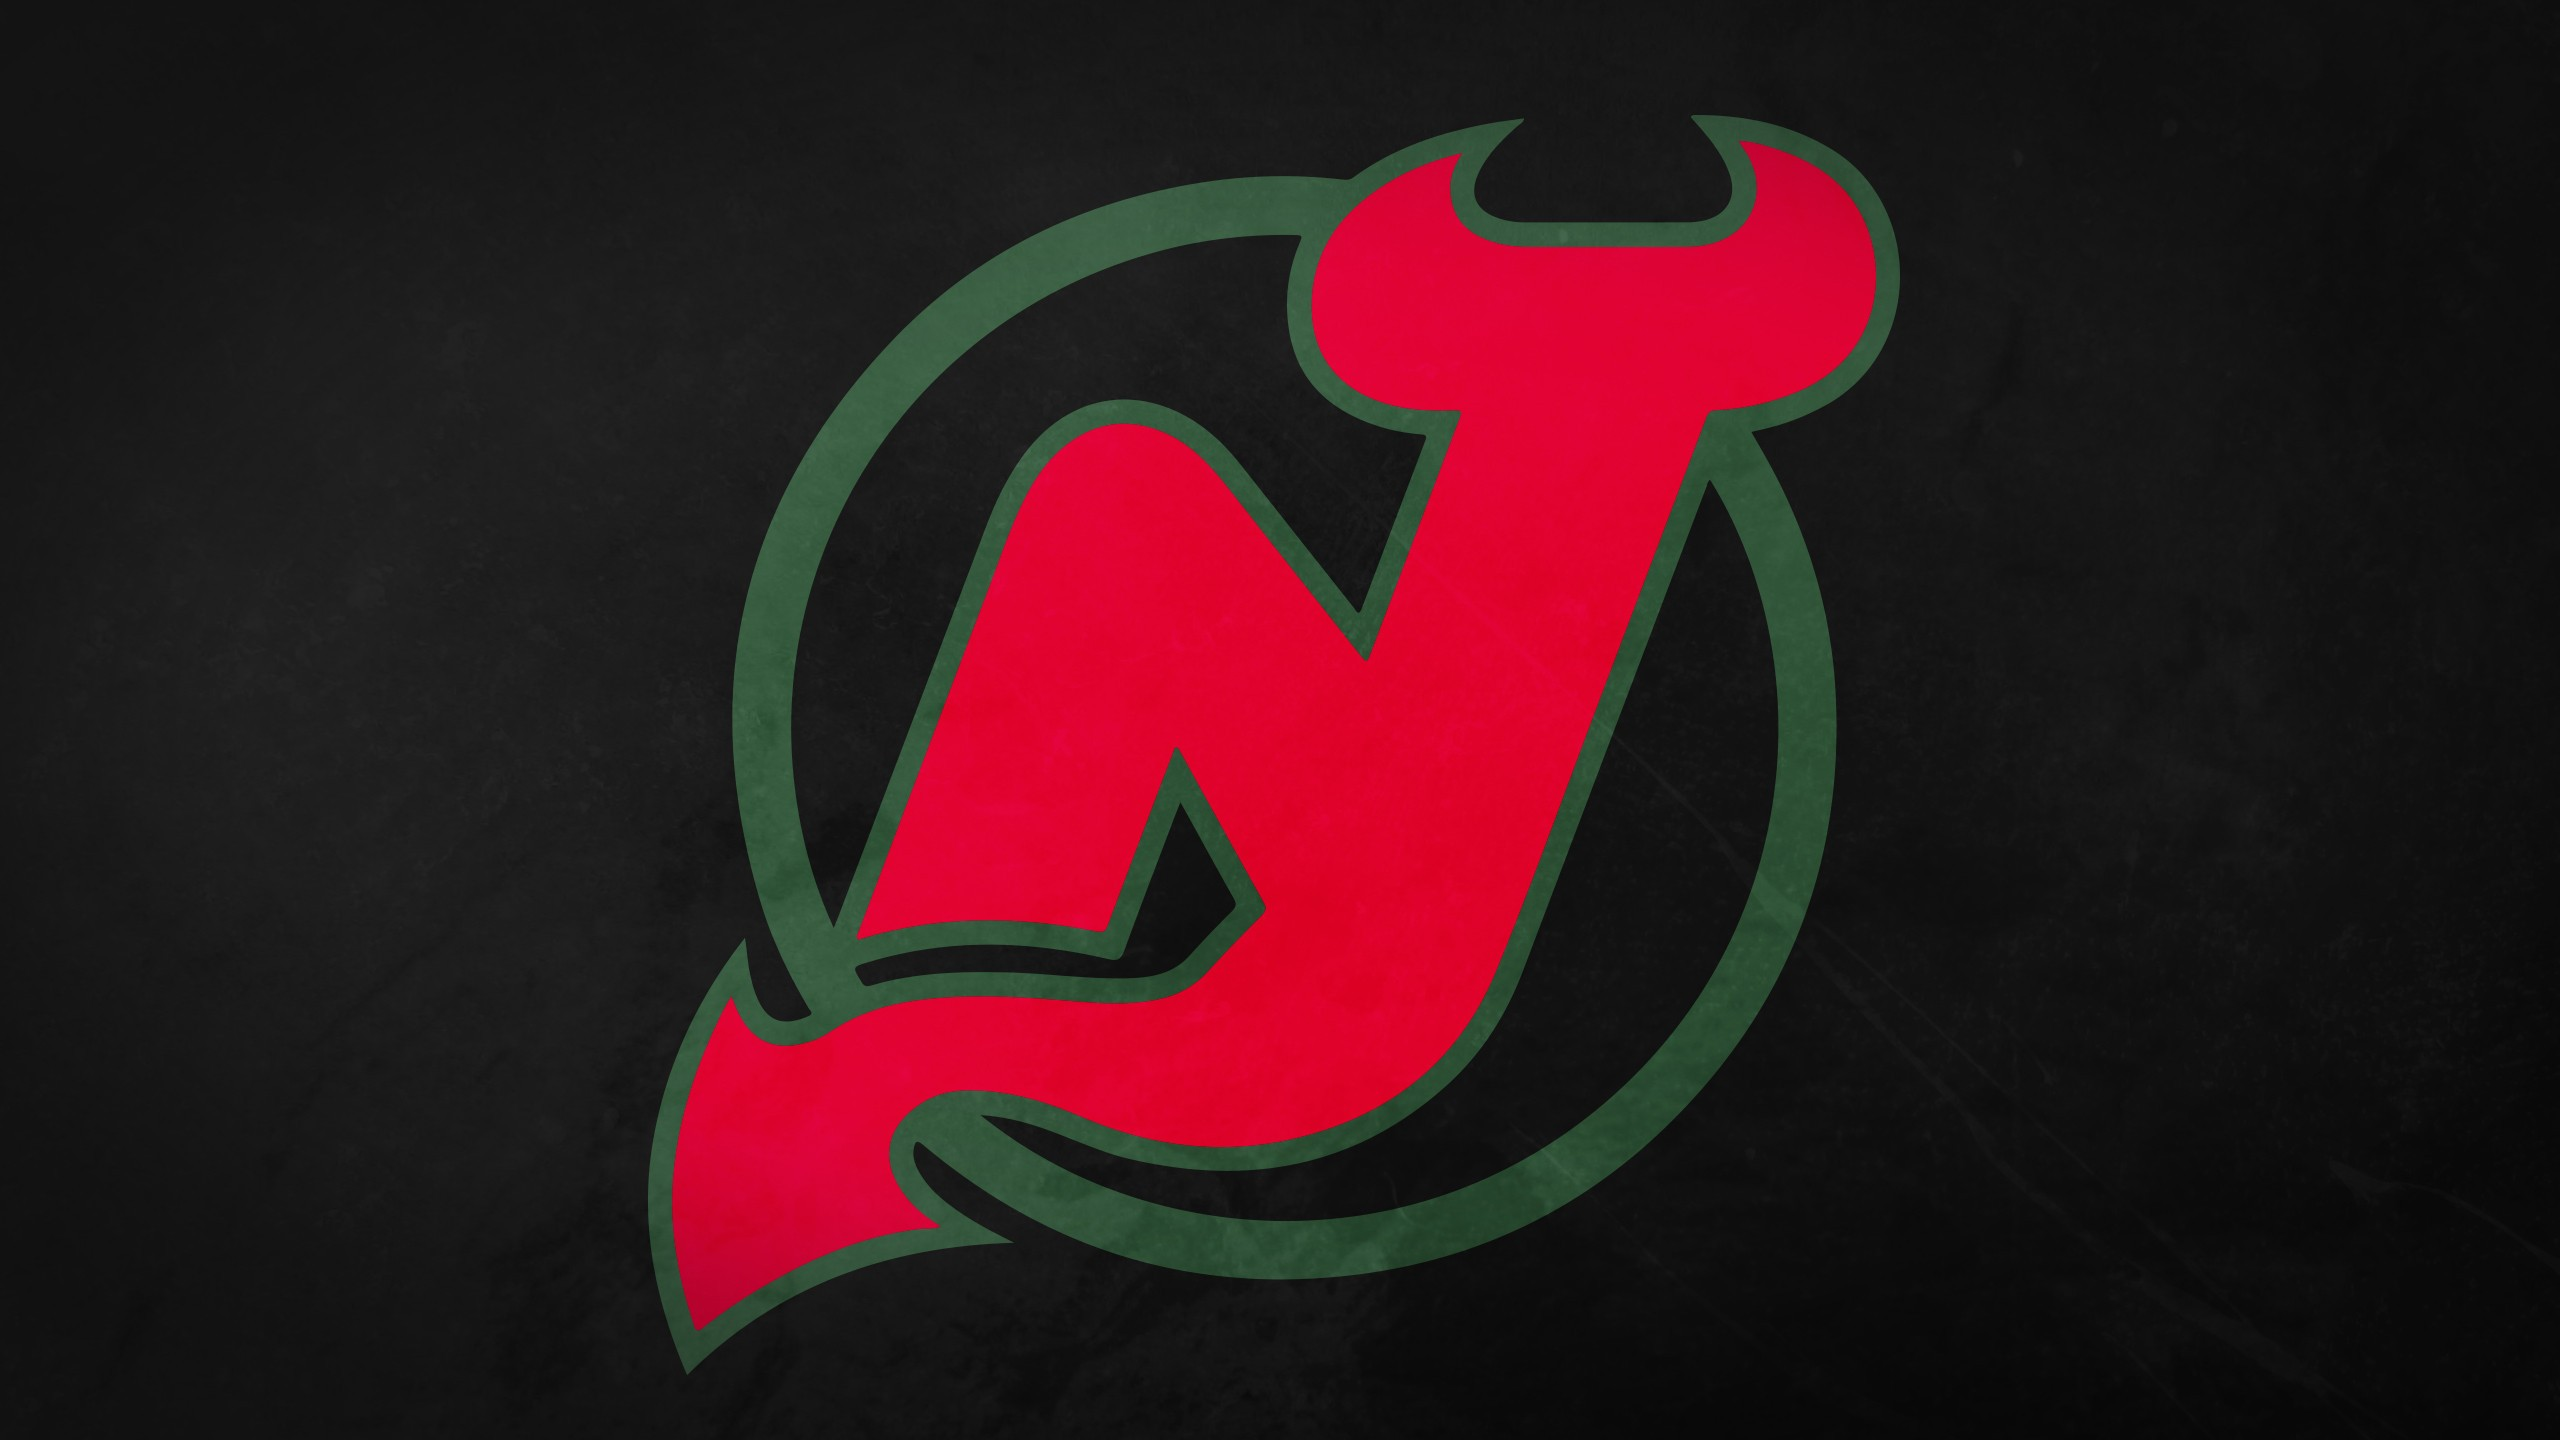 New Jersey Devils Computer Wallpaper Desktop Background 2560x1440 2560x1440